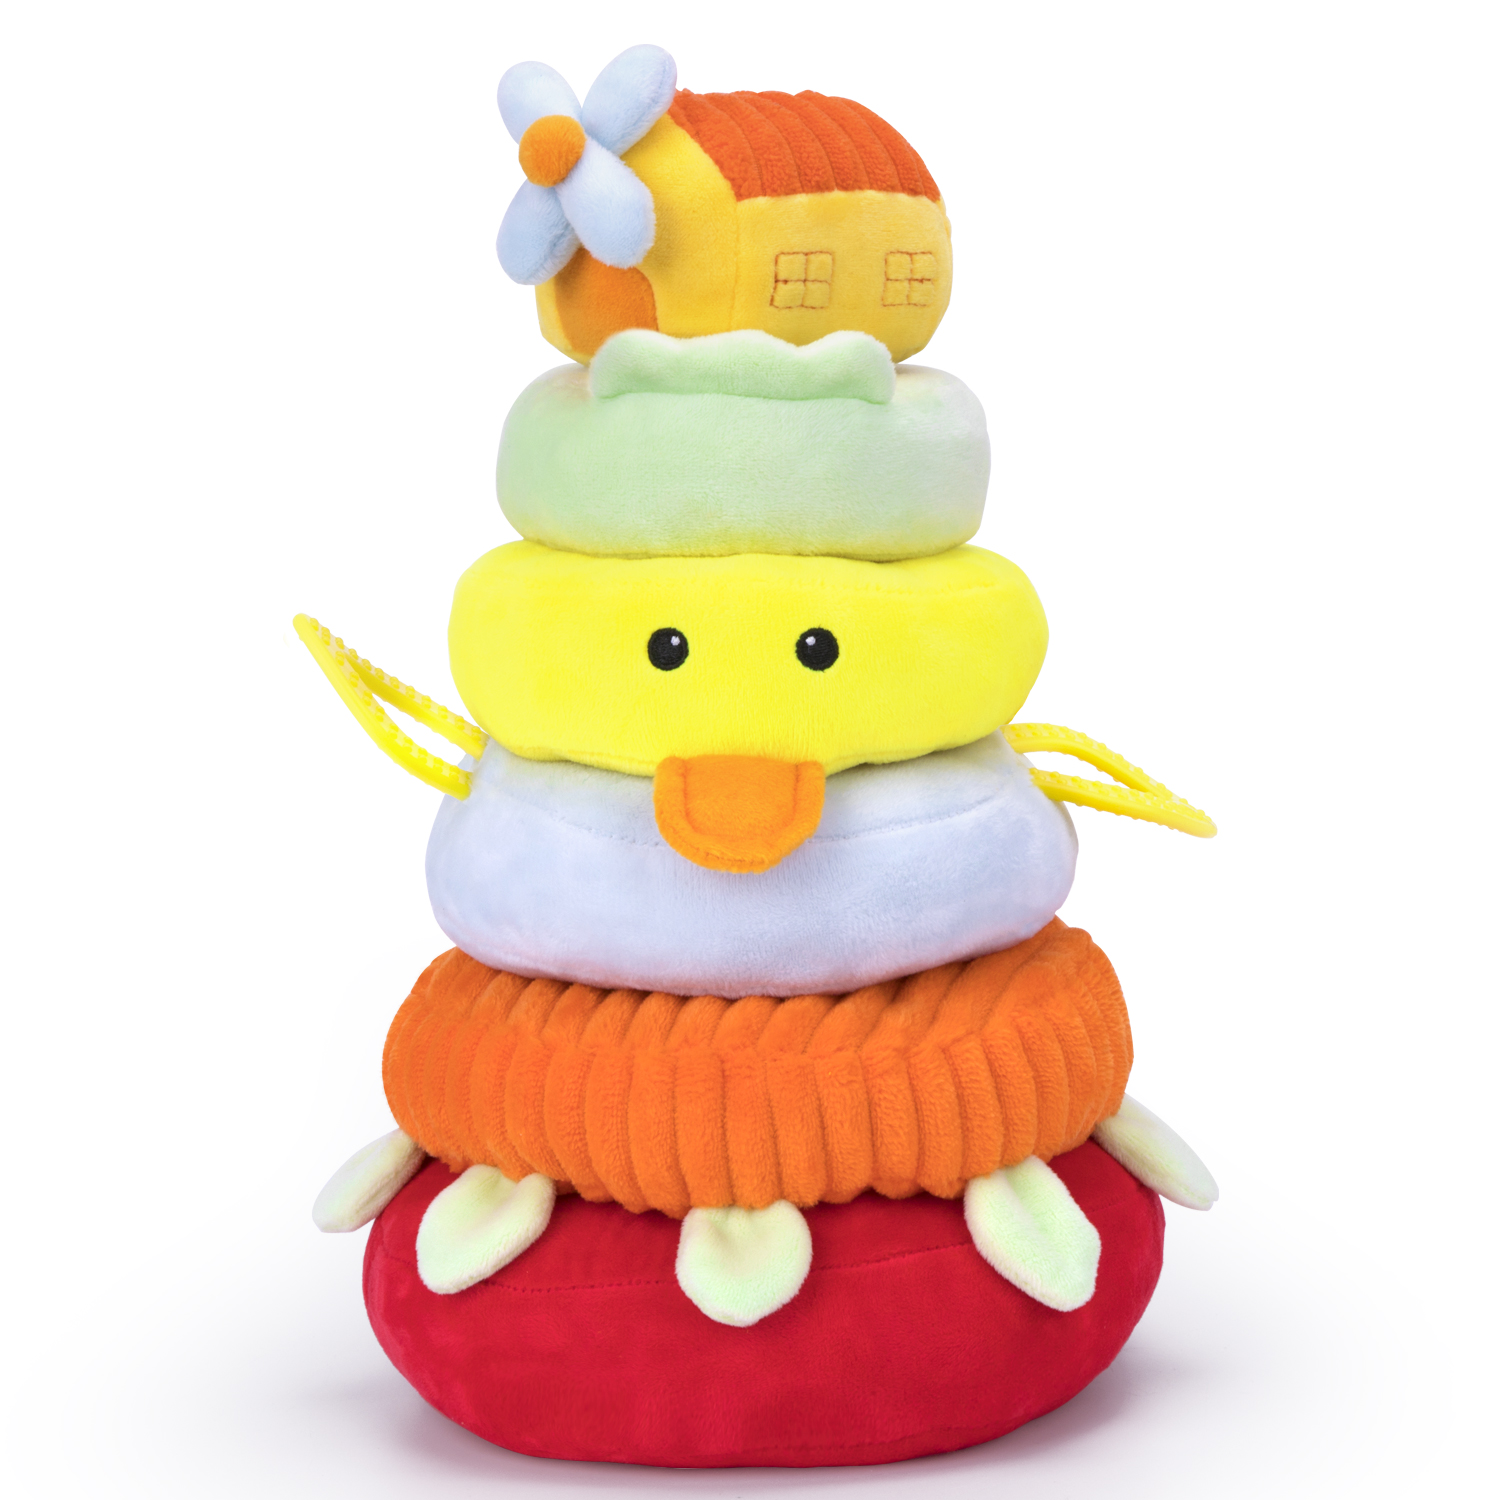 iPlay, iLearn Baby Stacking Toys, Soft Fabric Ring Stacker, Plush Duck Nesting Toy W/ Sound, Early Education